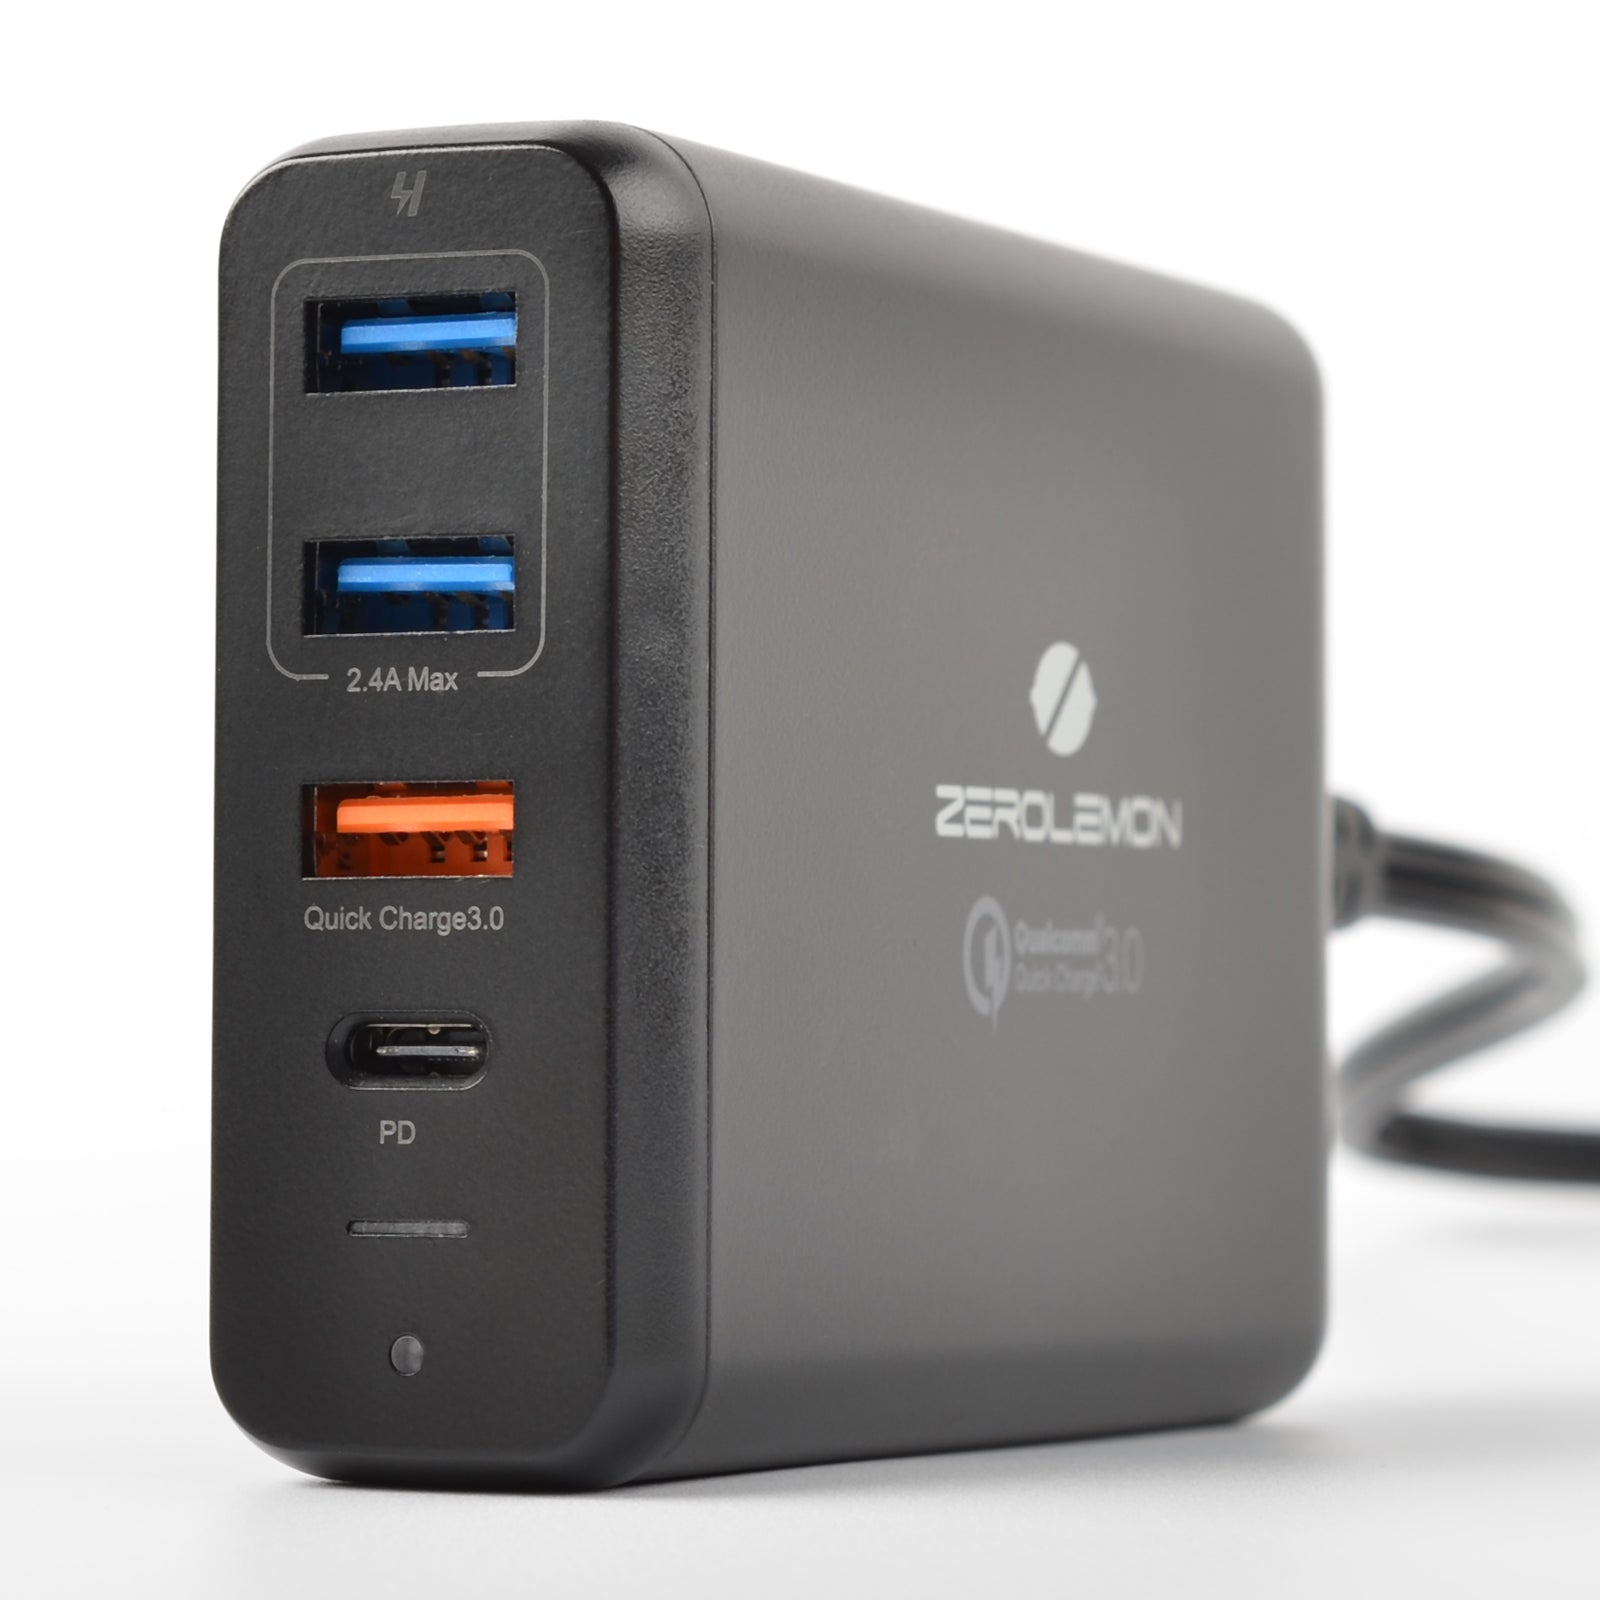 75W 4-Port PD Desktop Charger with 1 USB-C Port and QC 3.0